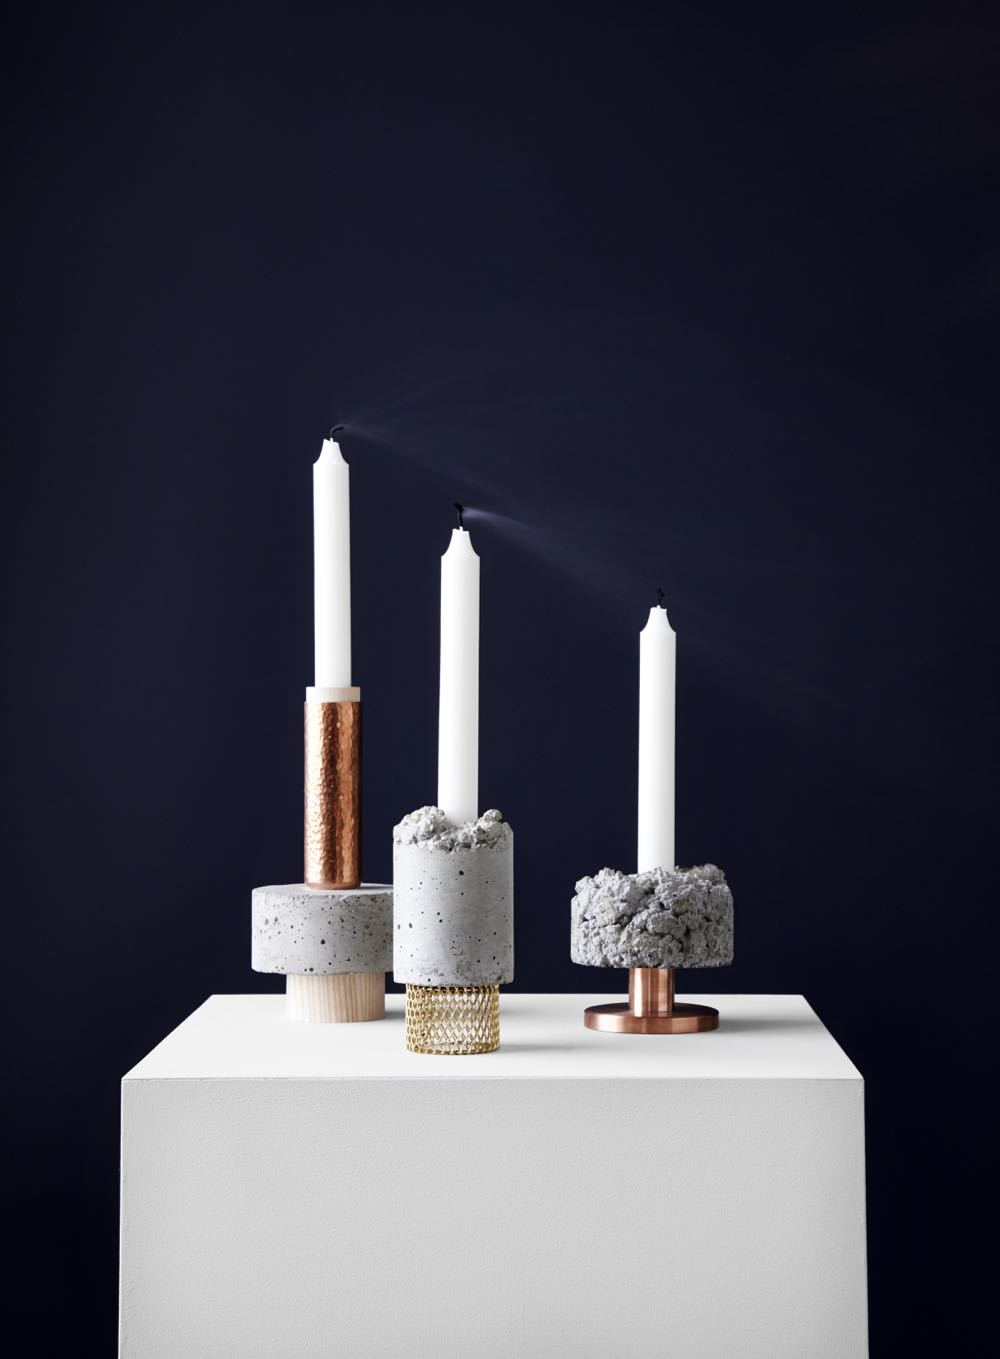 'Crowd' candlesticks by David Taylor for New Works.